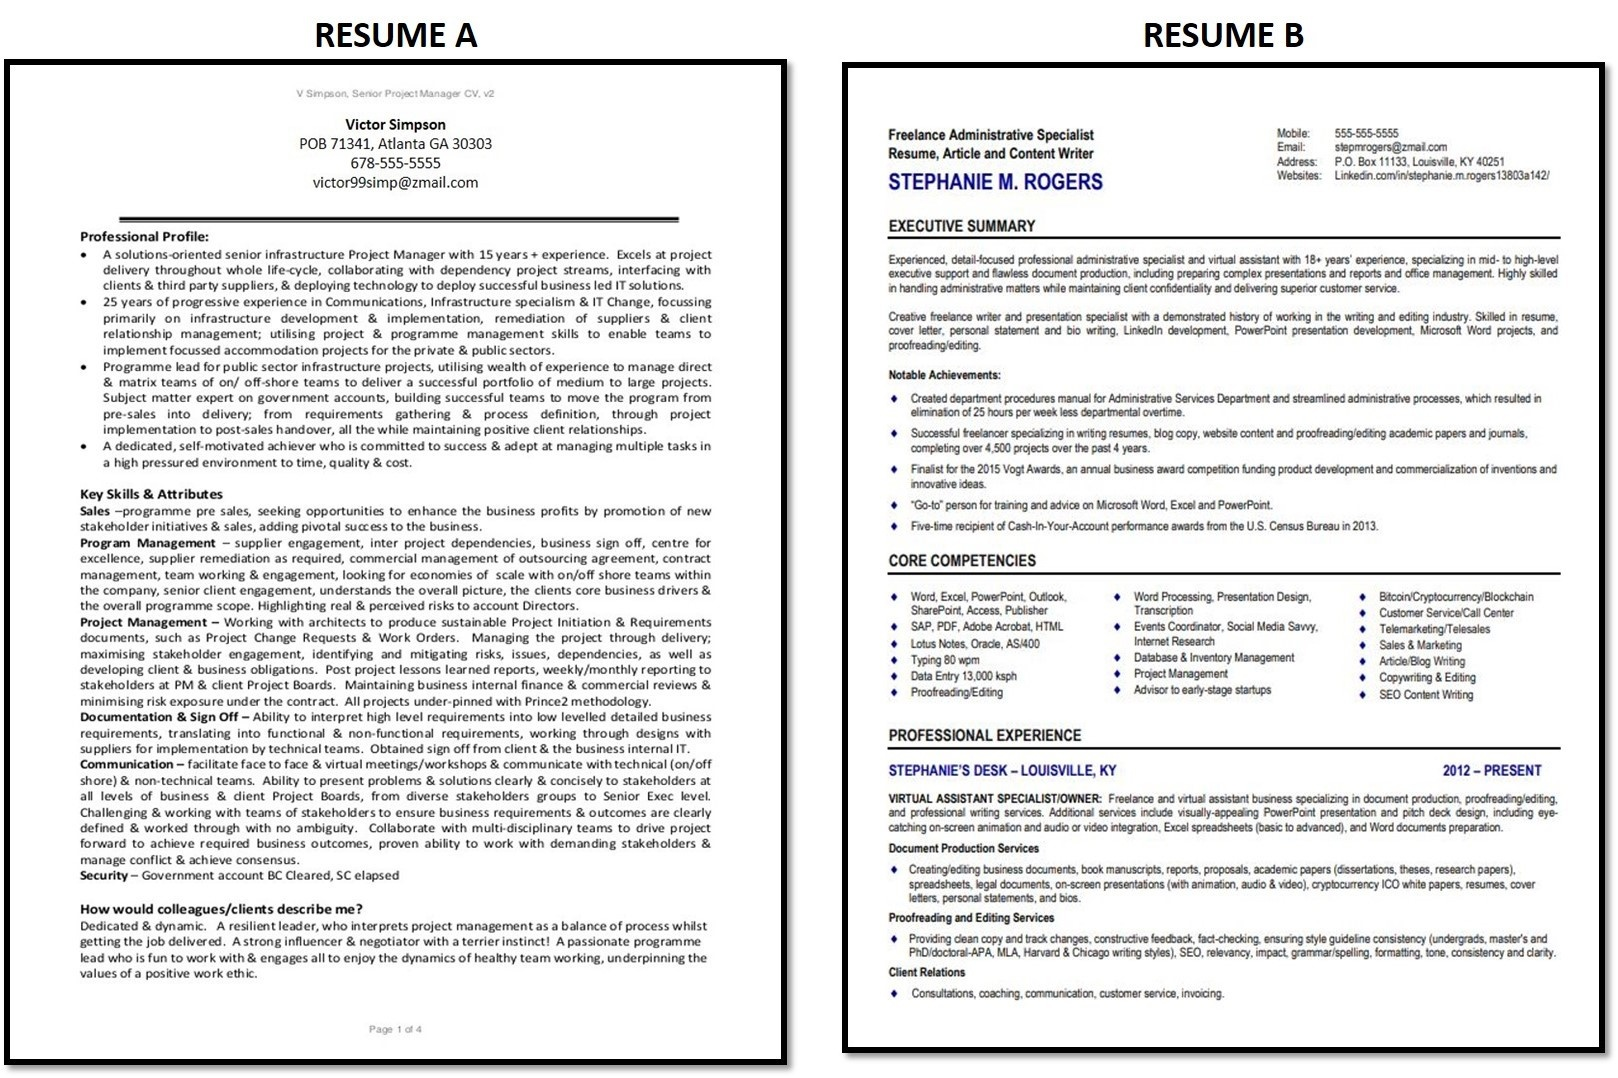 What do recruiters look for in a résumé at first glance? - Quora